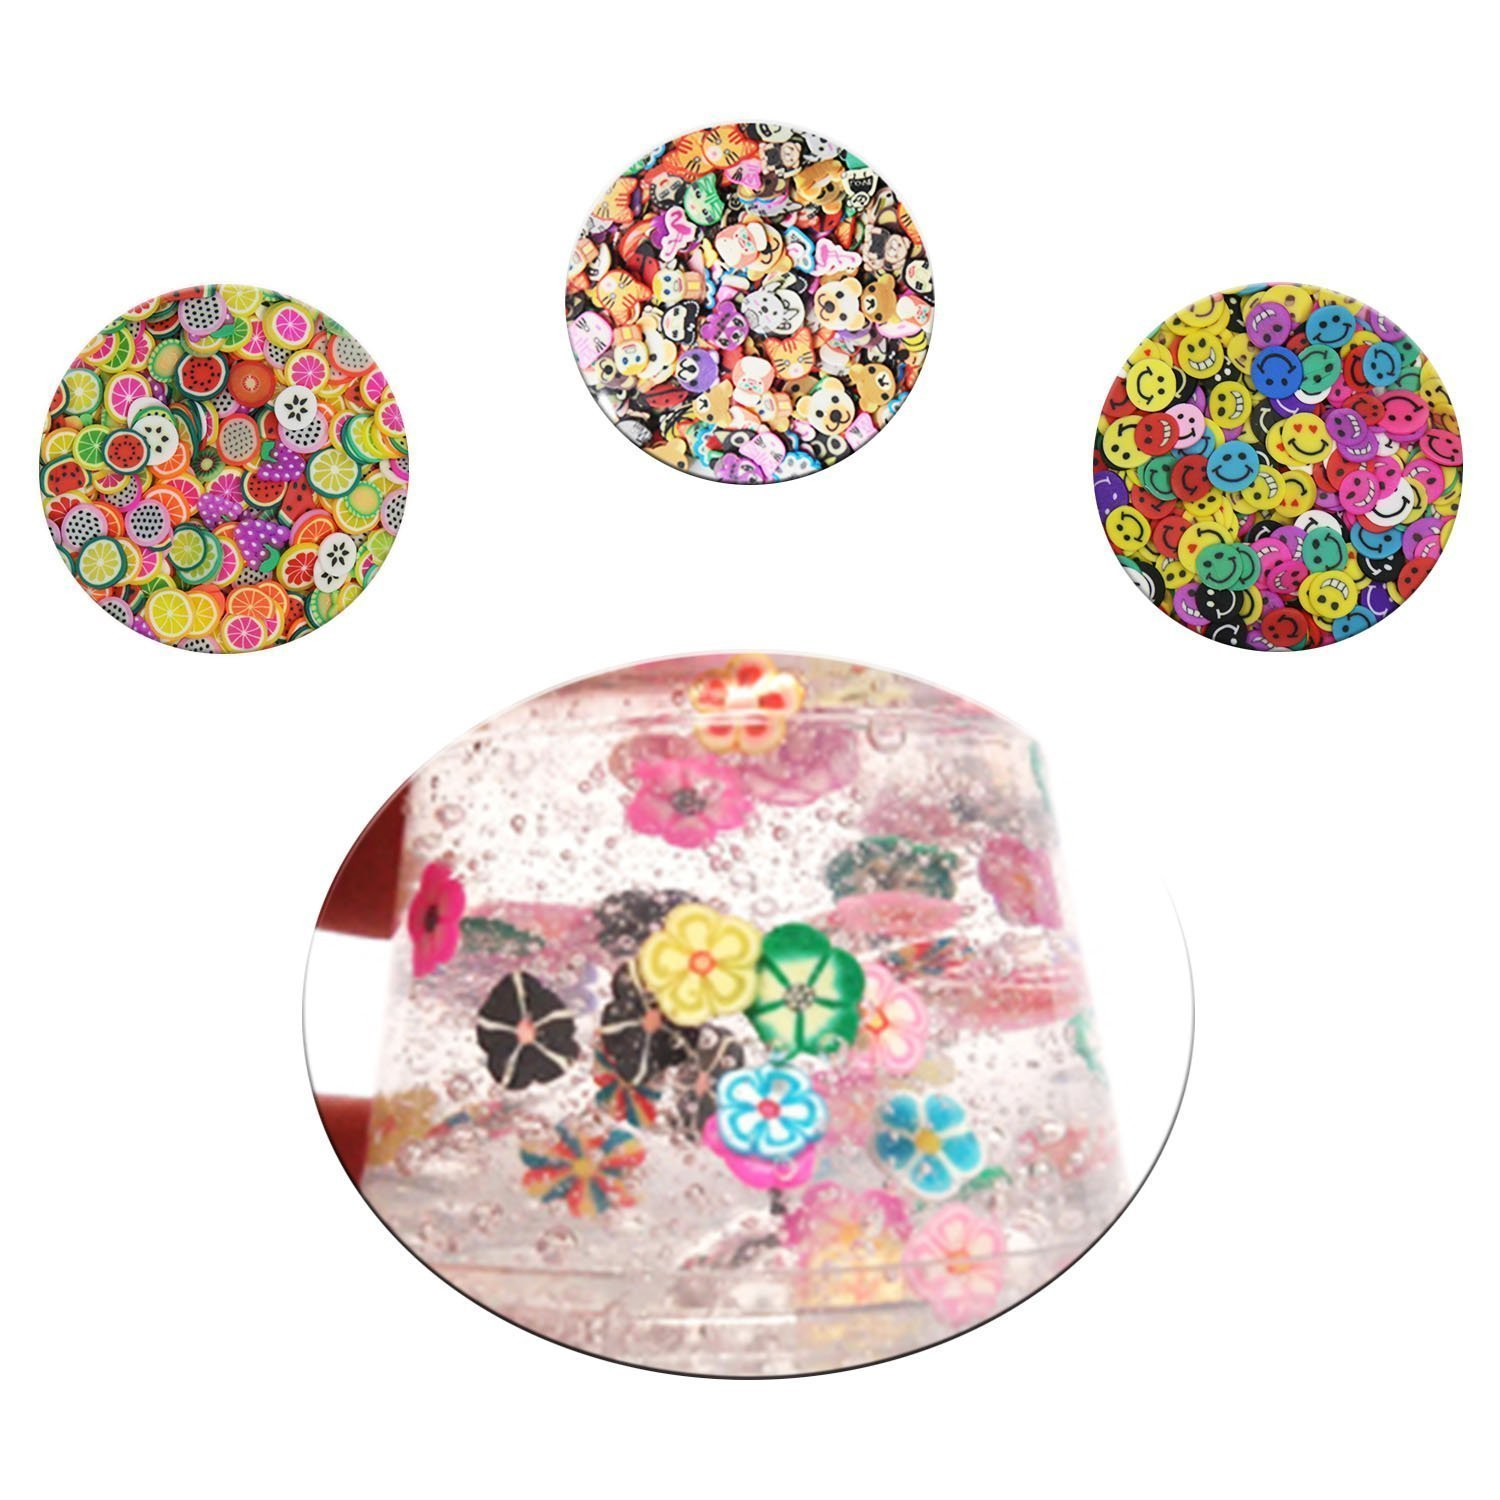 ... Foam Balls, Glitter Jars, Fruit Flower Animal Slices, Pearls, Slime Tools Slime Beads Charms for DIY Slime Making Art Craft Party Decor: Arts, ...